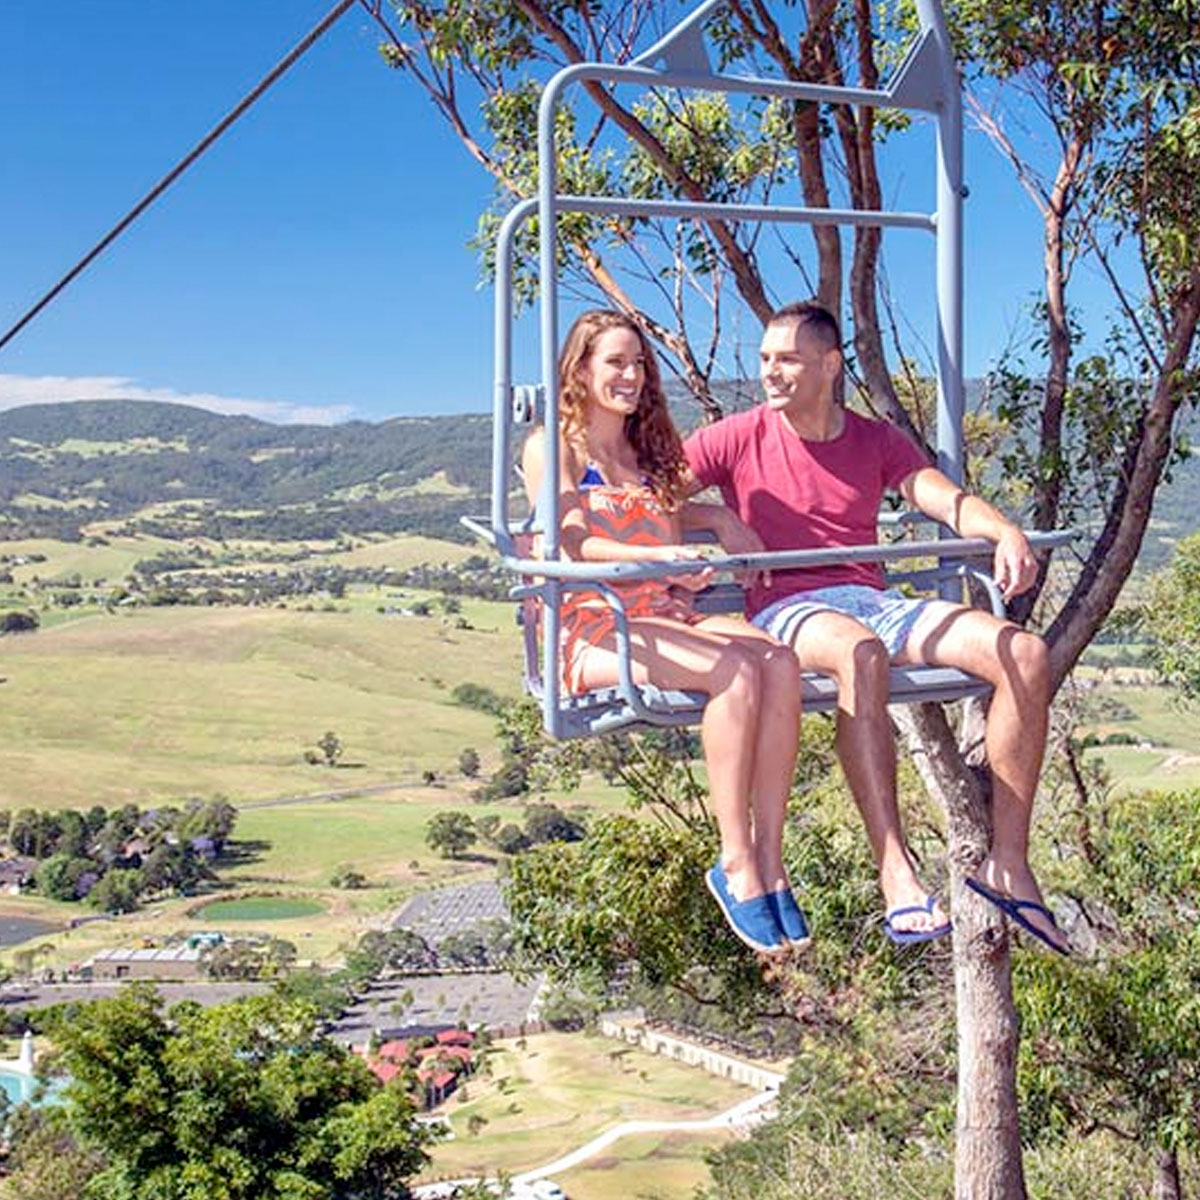 rides-chairlift-1